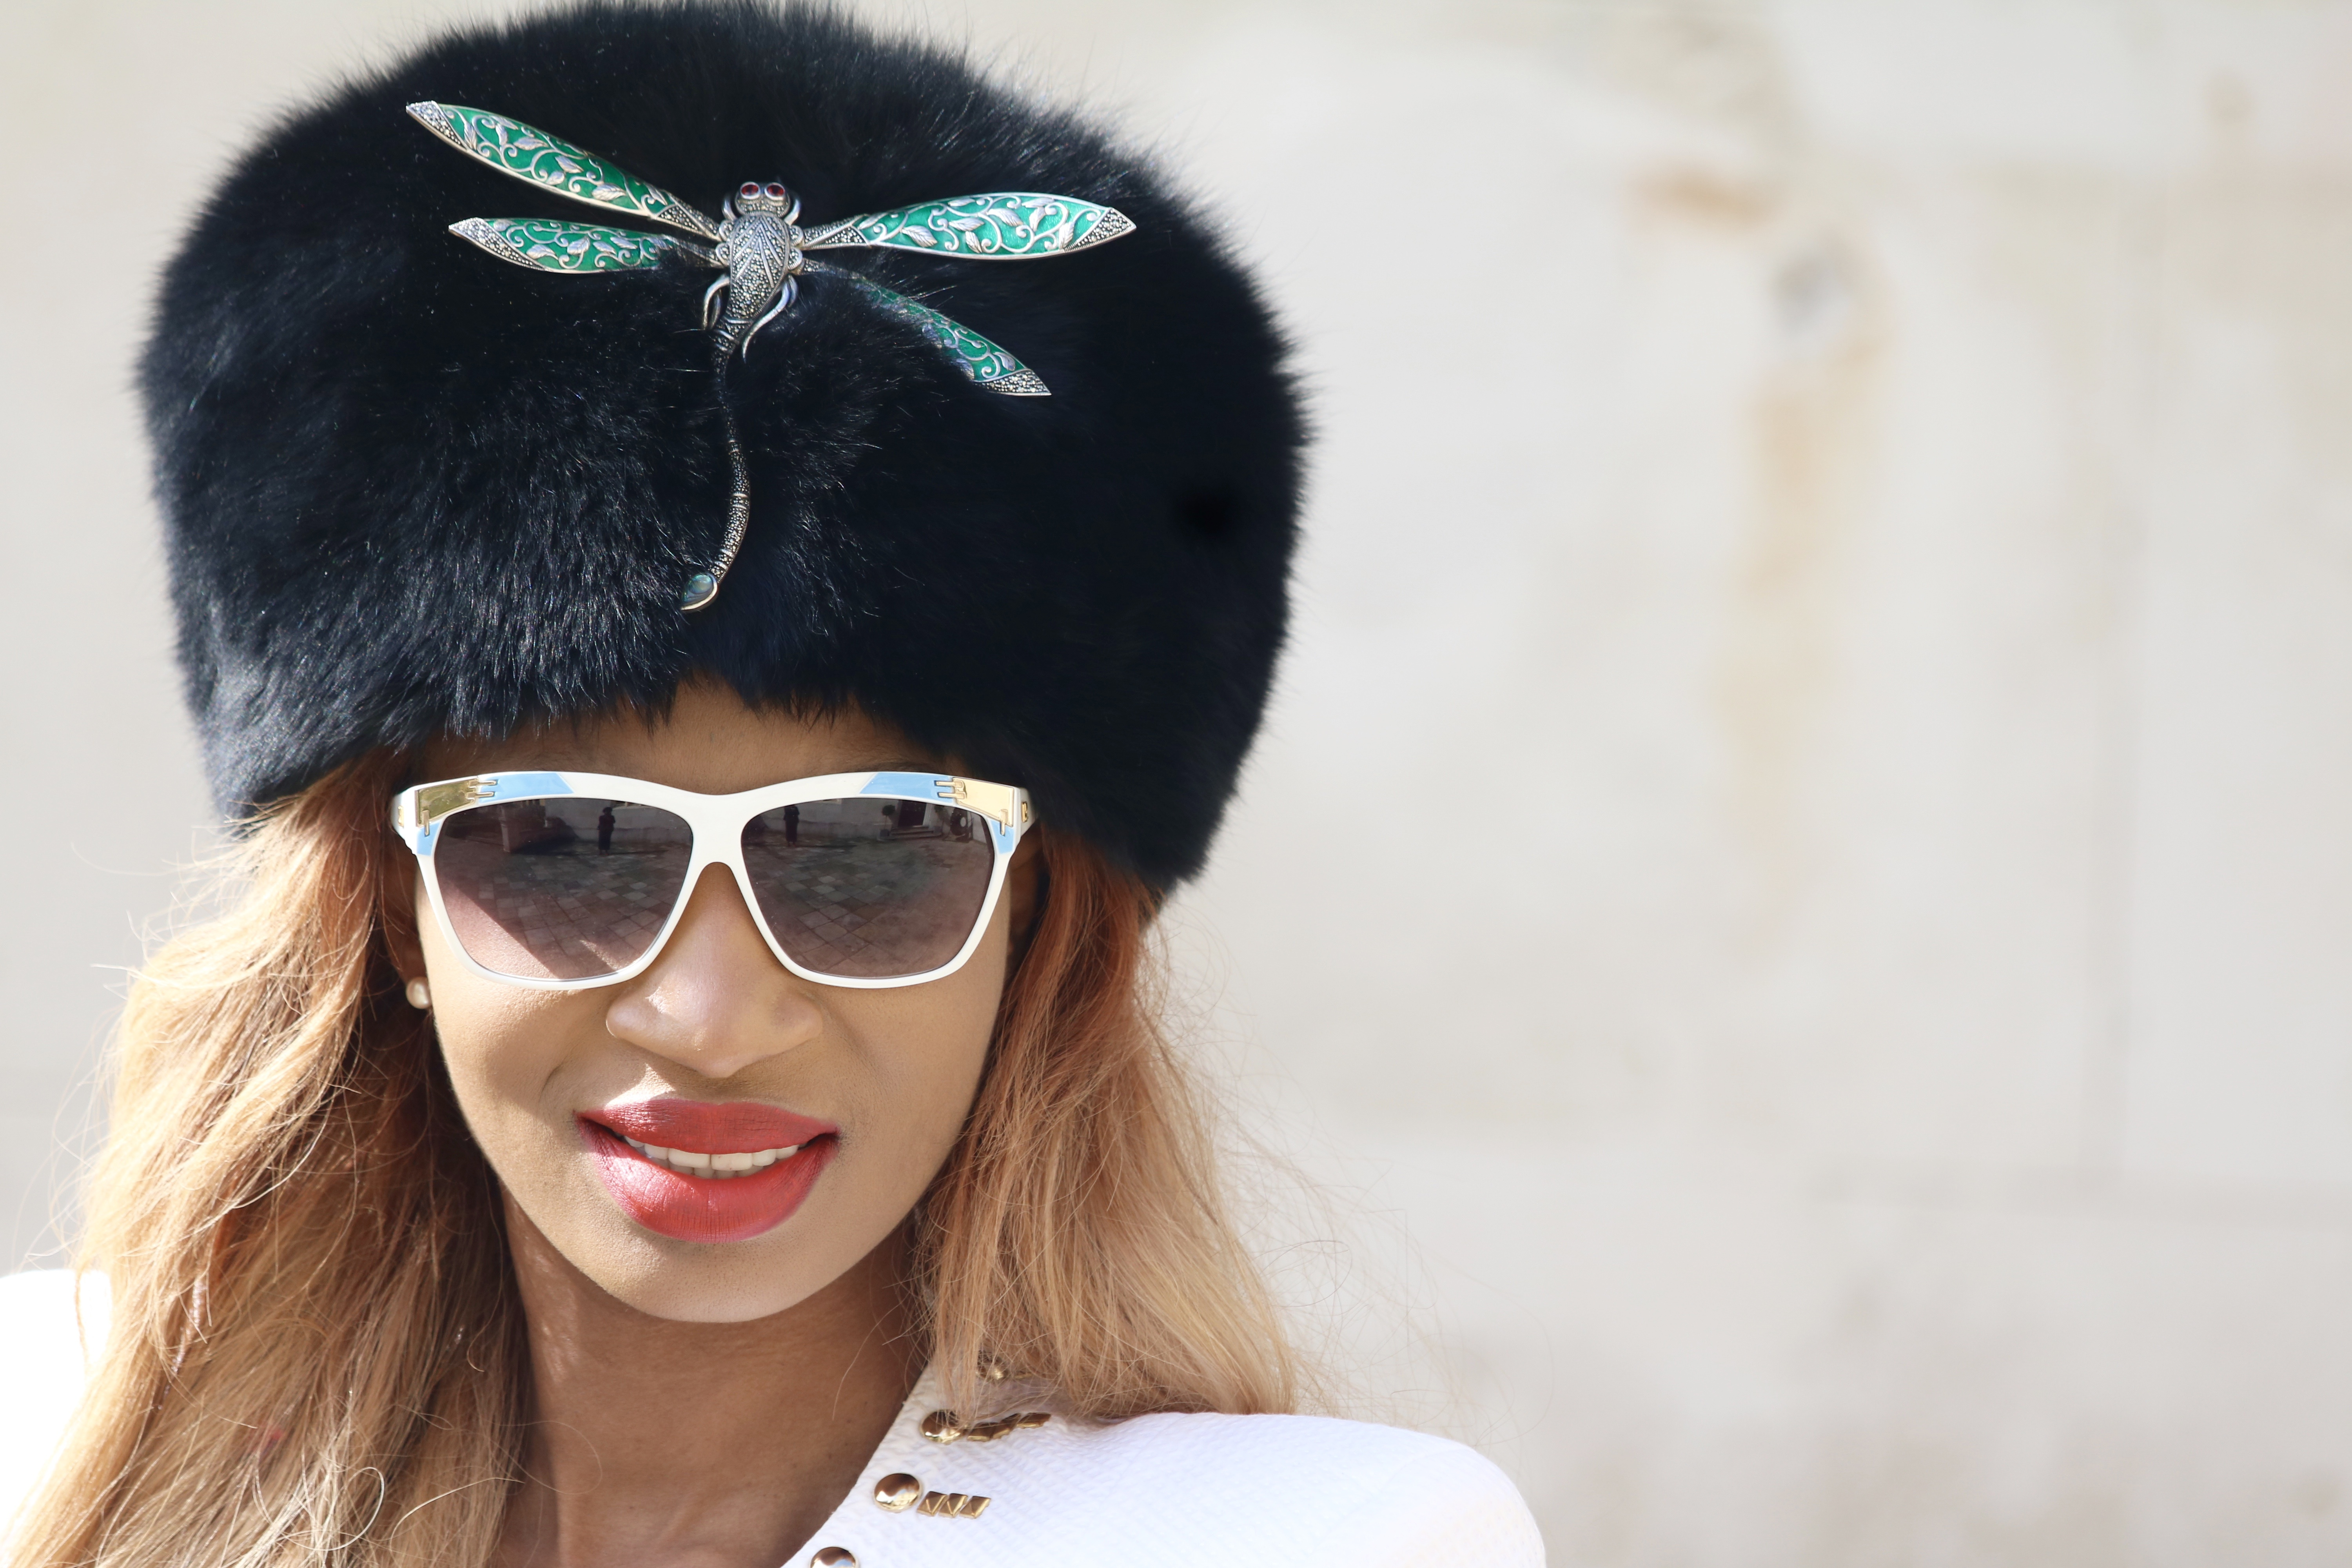 MAMMYPI, DESIGNER SHOES,BEST SHOES 2016, MOST TRENDY SHOES,CAMEROONIAN FASHION BLOGGER, BEST CAMEROONIAN FASHION BLOGGER,BEST AFRICAN BLOGGER, LONDON BLOGGER,WHO IS IRENE MAJOR,